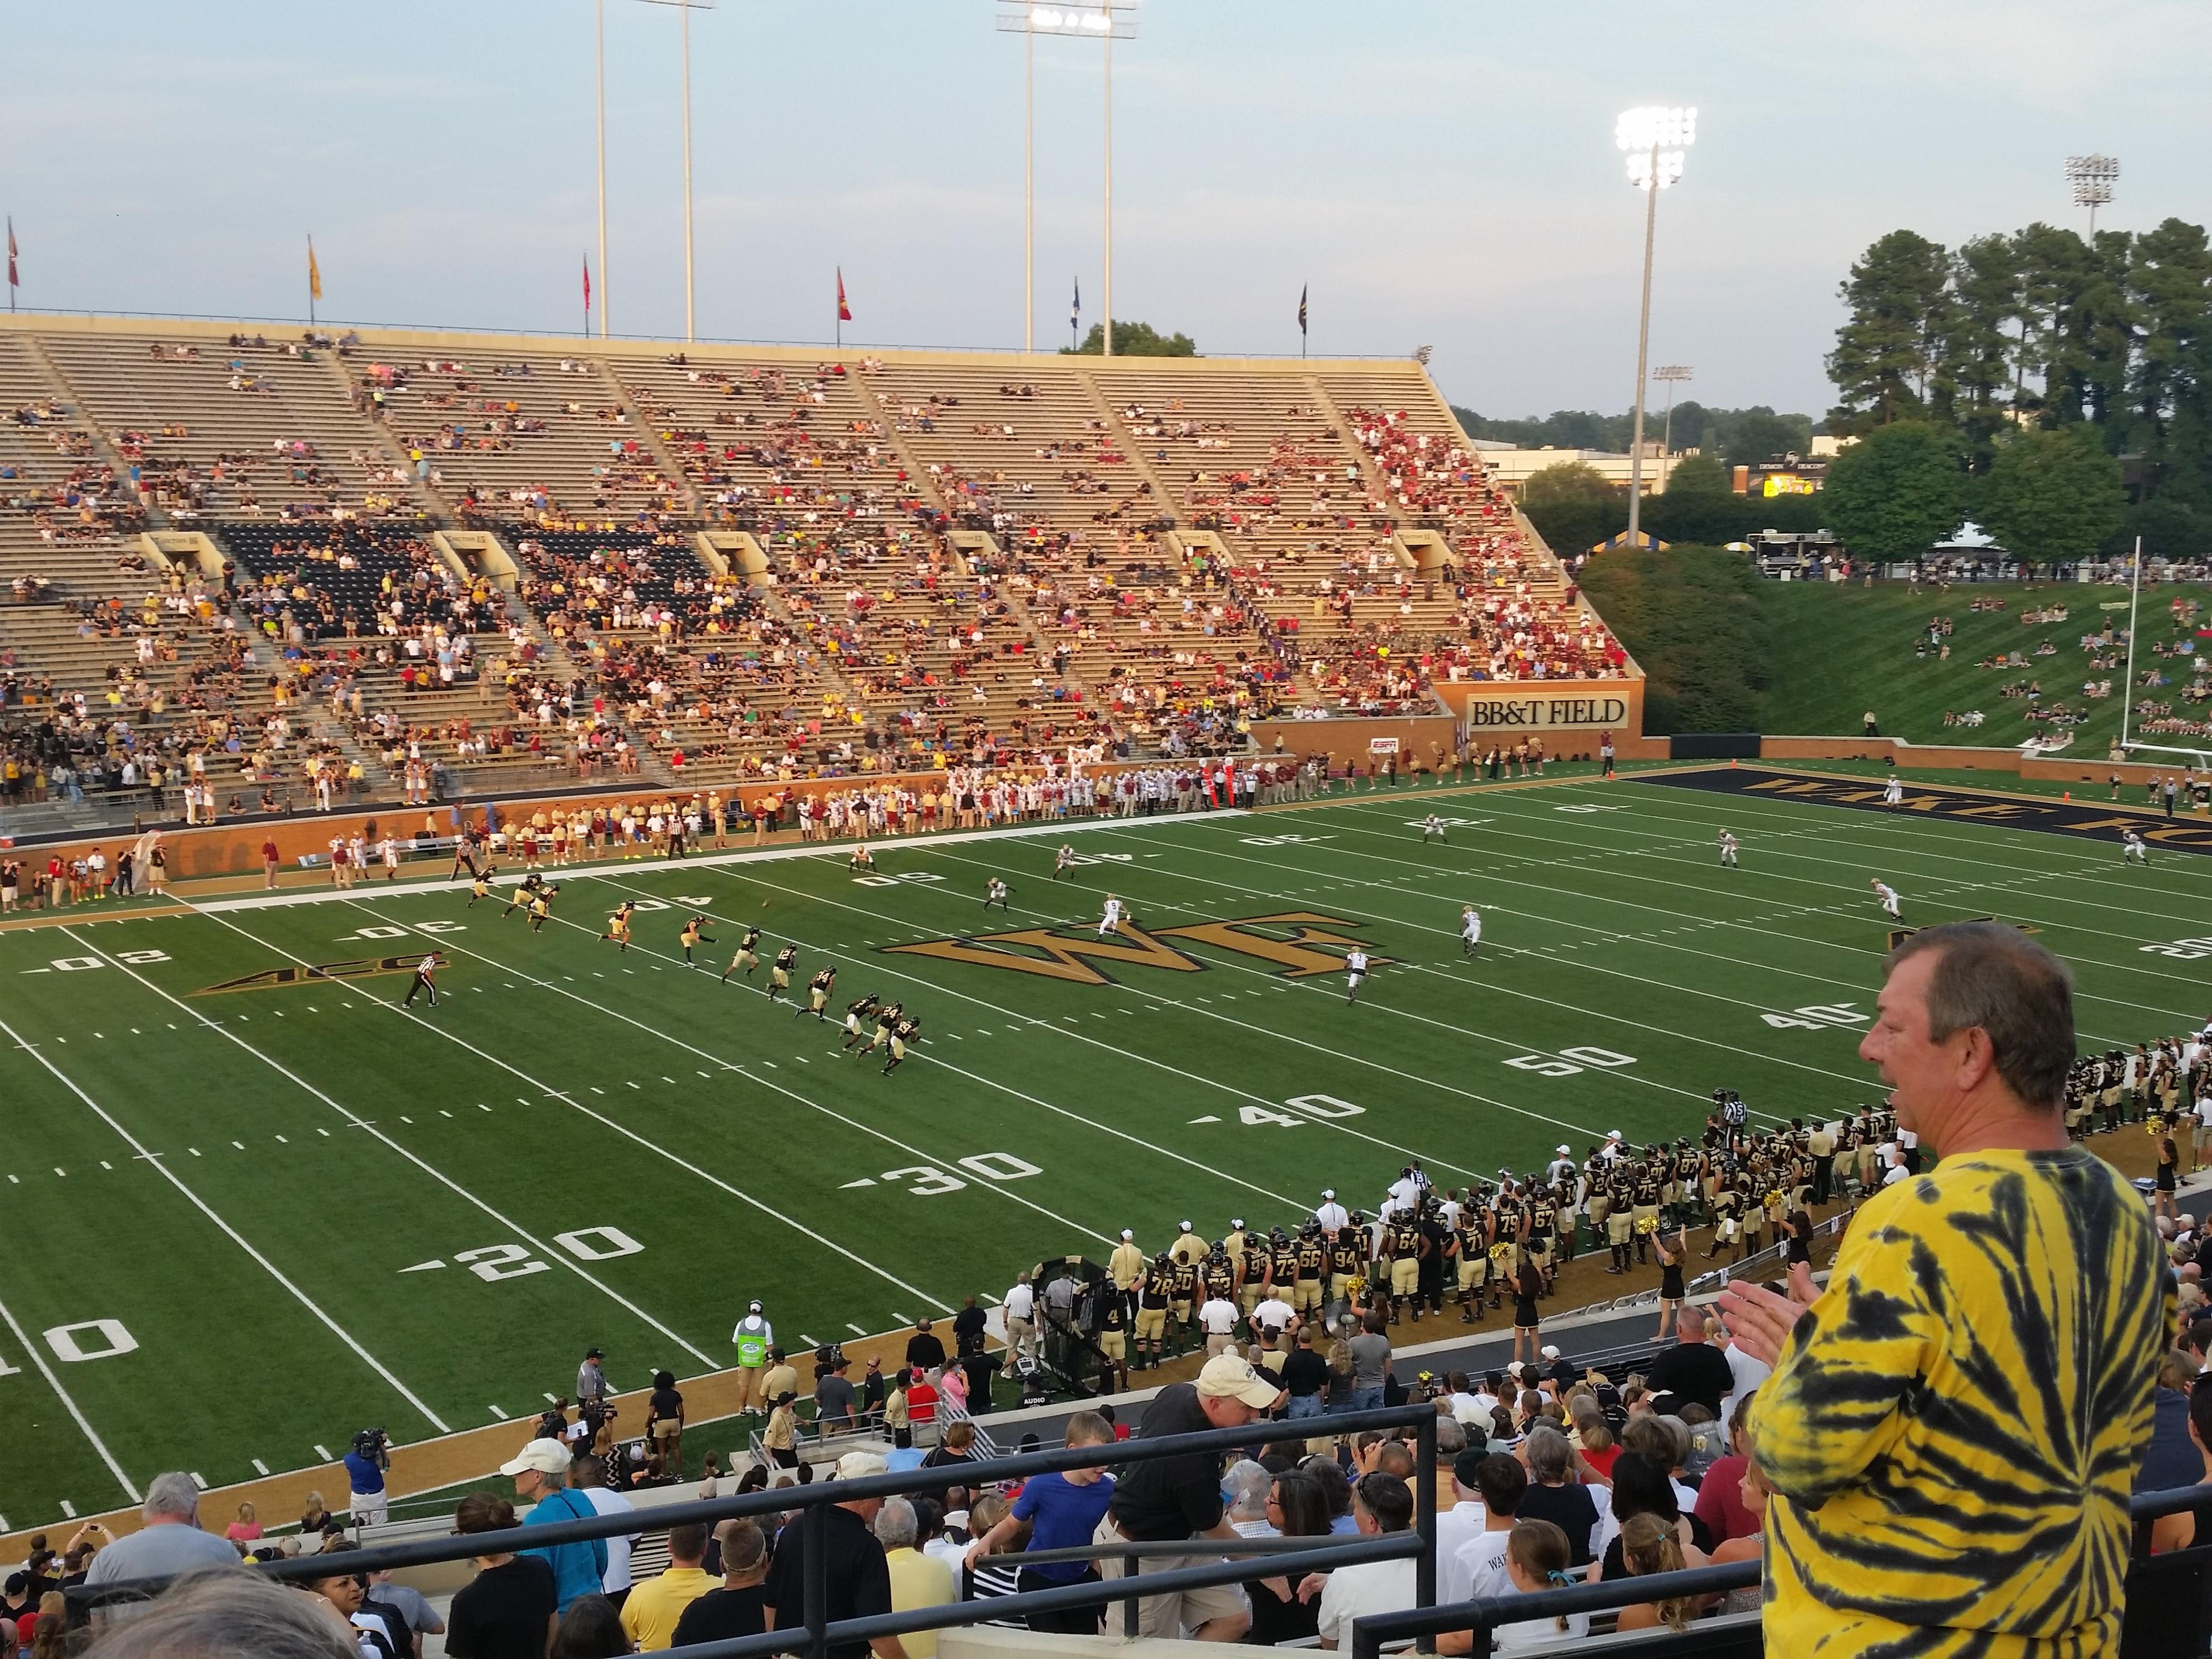 Truist Field at Wake Forest Section 2 Row JJ Seat 1